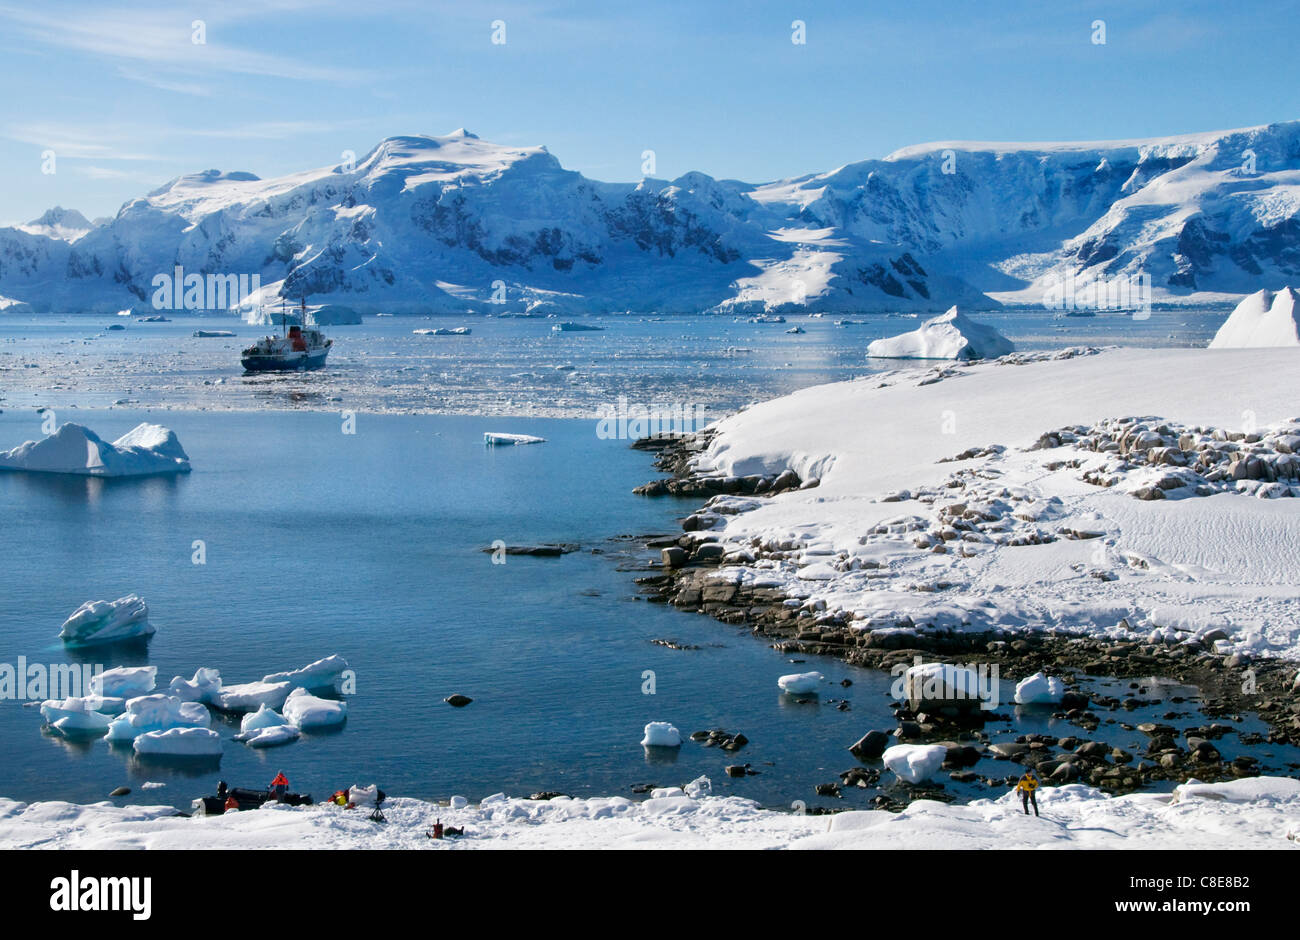 Antarctic expedition vessel MV Ushuaia anchored at Charlotte Bay in Antarctica - Stock Image